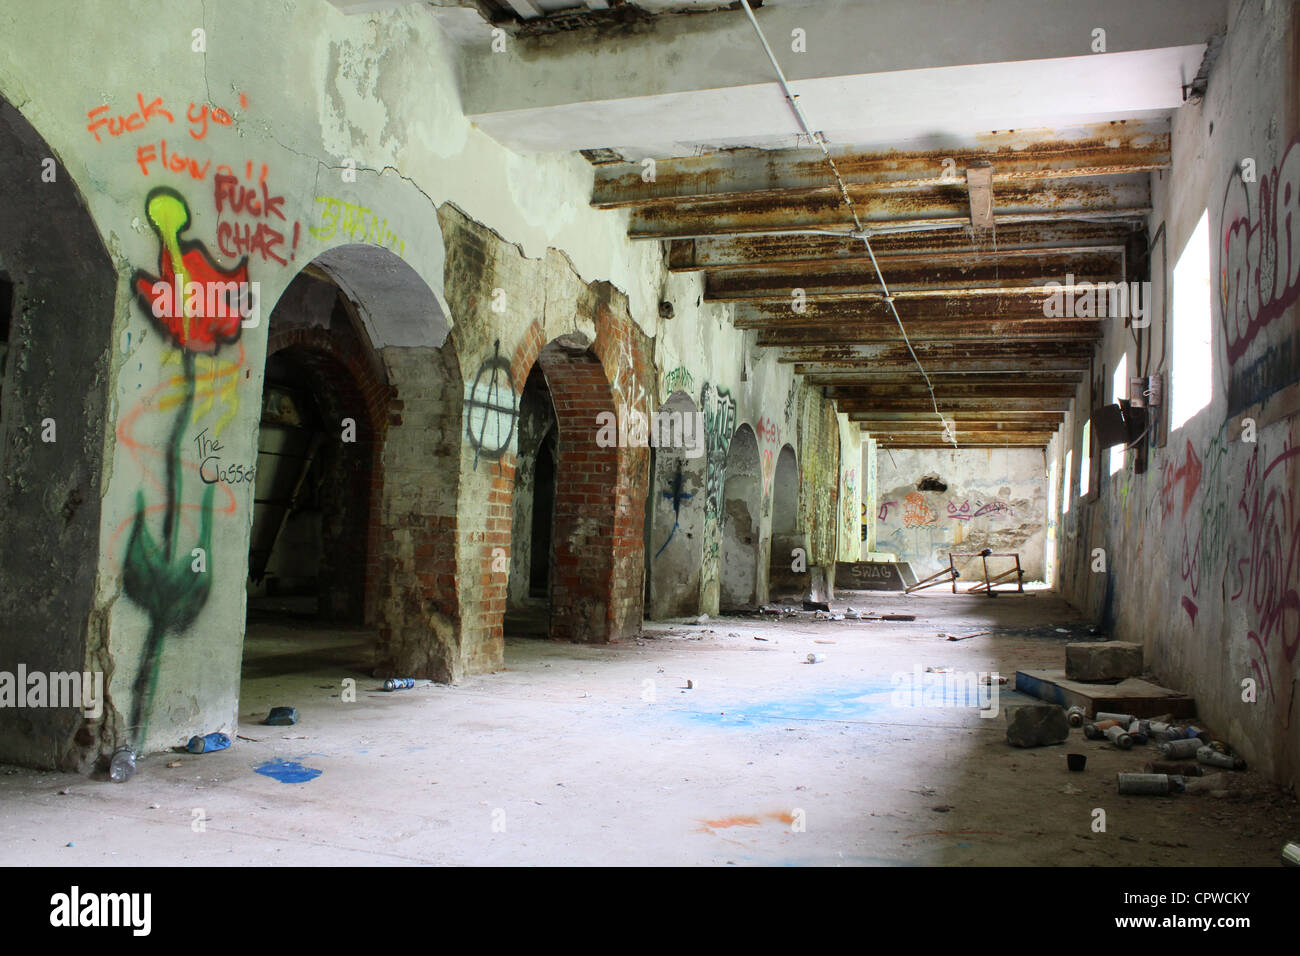 abandon building interior - Stock Image